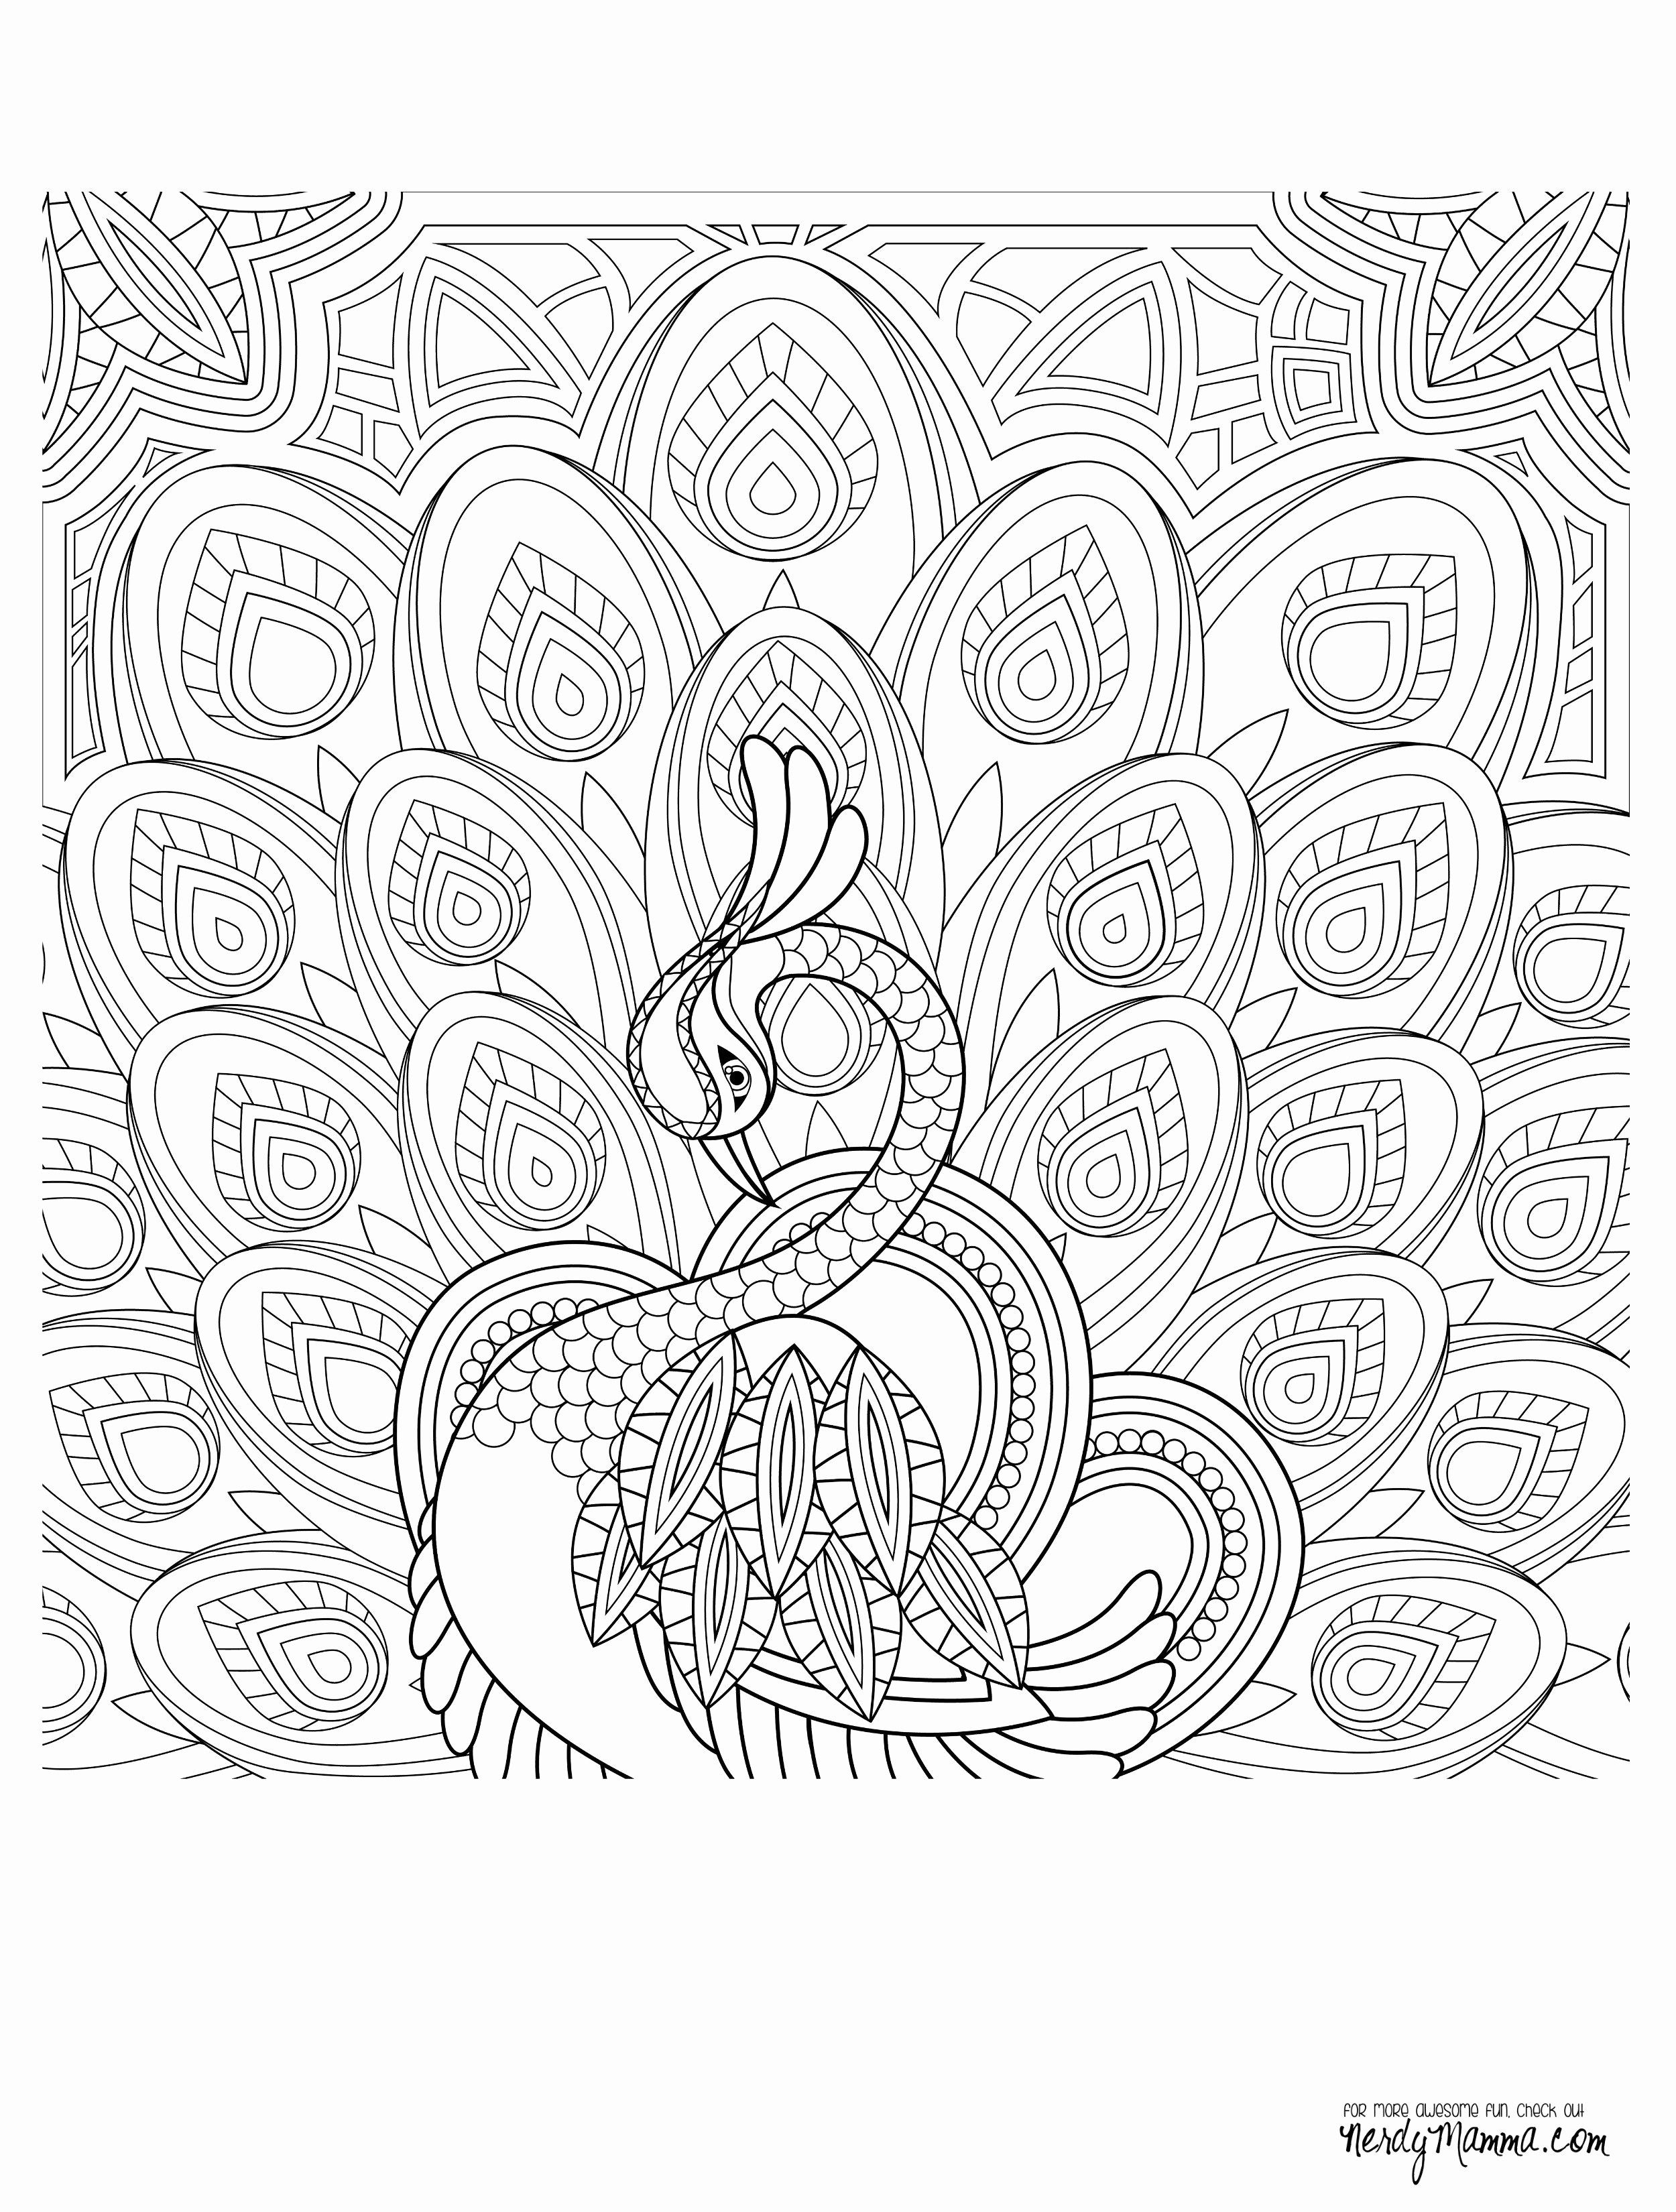 Coloring Pages Of Sugar Skulls  Download 18k - To print for your project